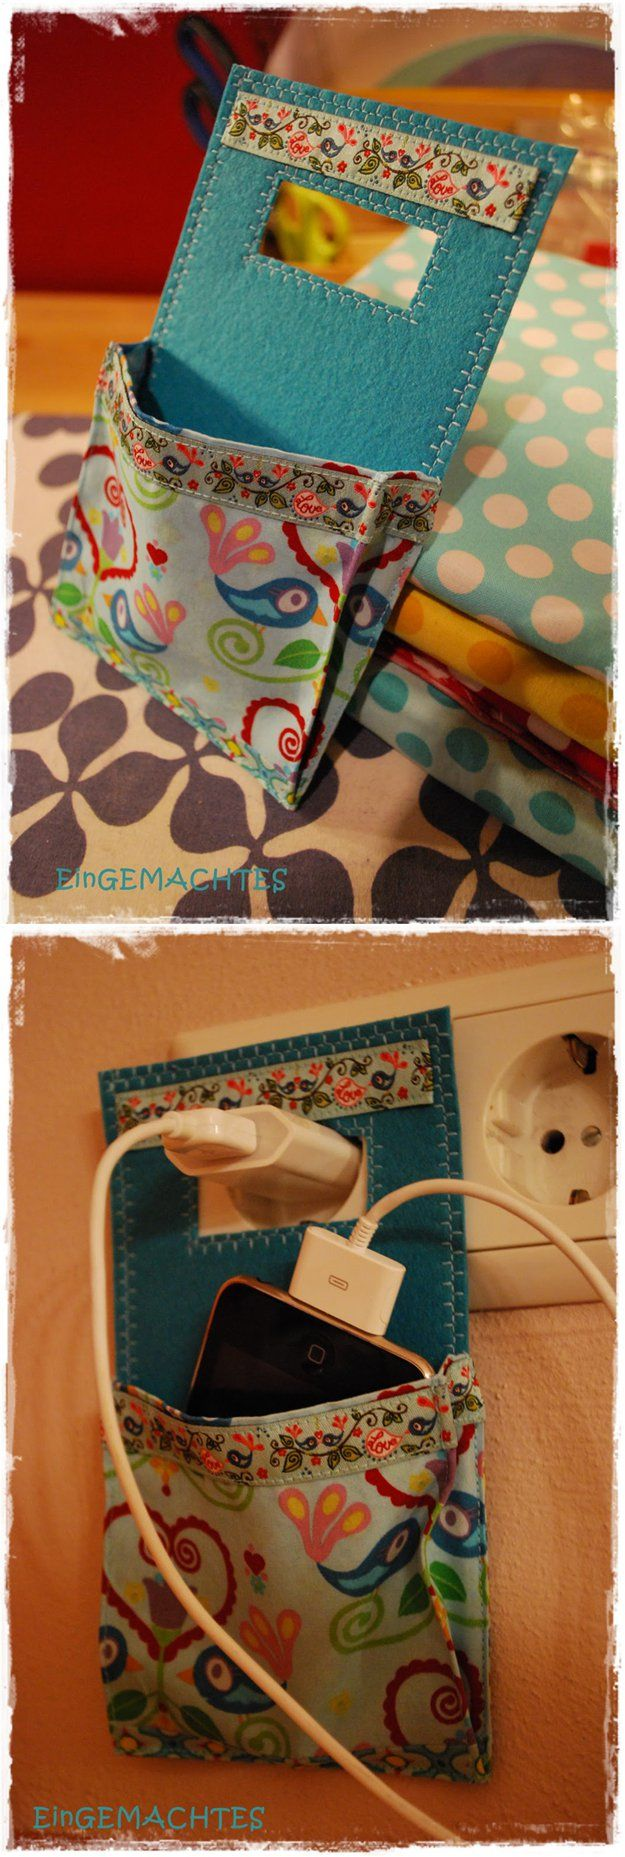 Cute Homemade Sewing Craft Project to Sell for Teens | http://diyready.com/25-easy-crafts-to-make-and-sell/